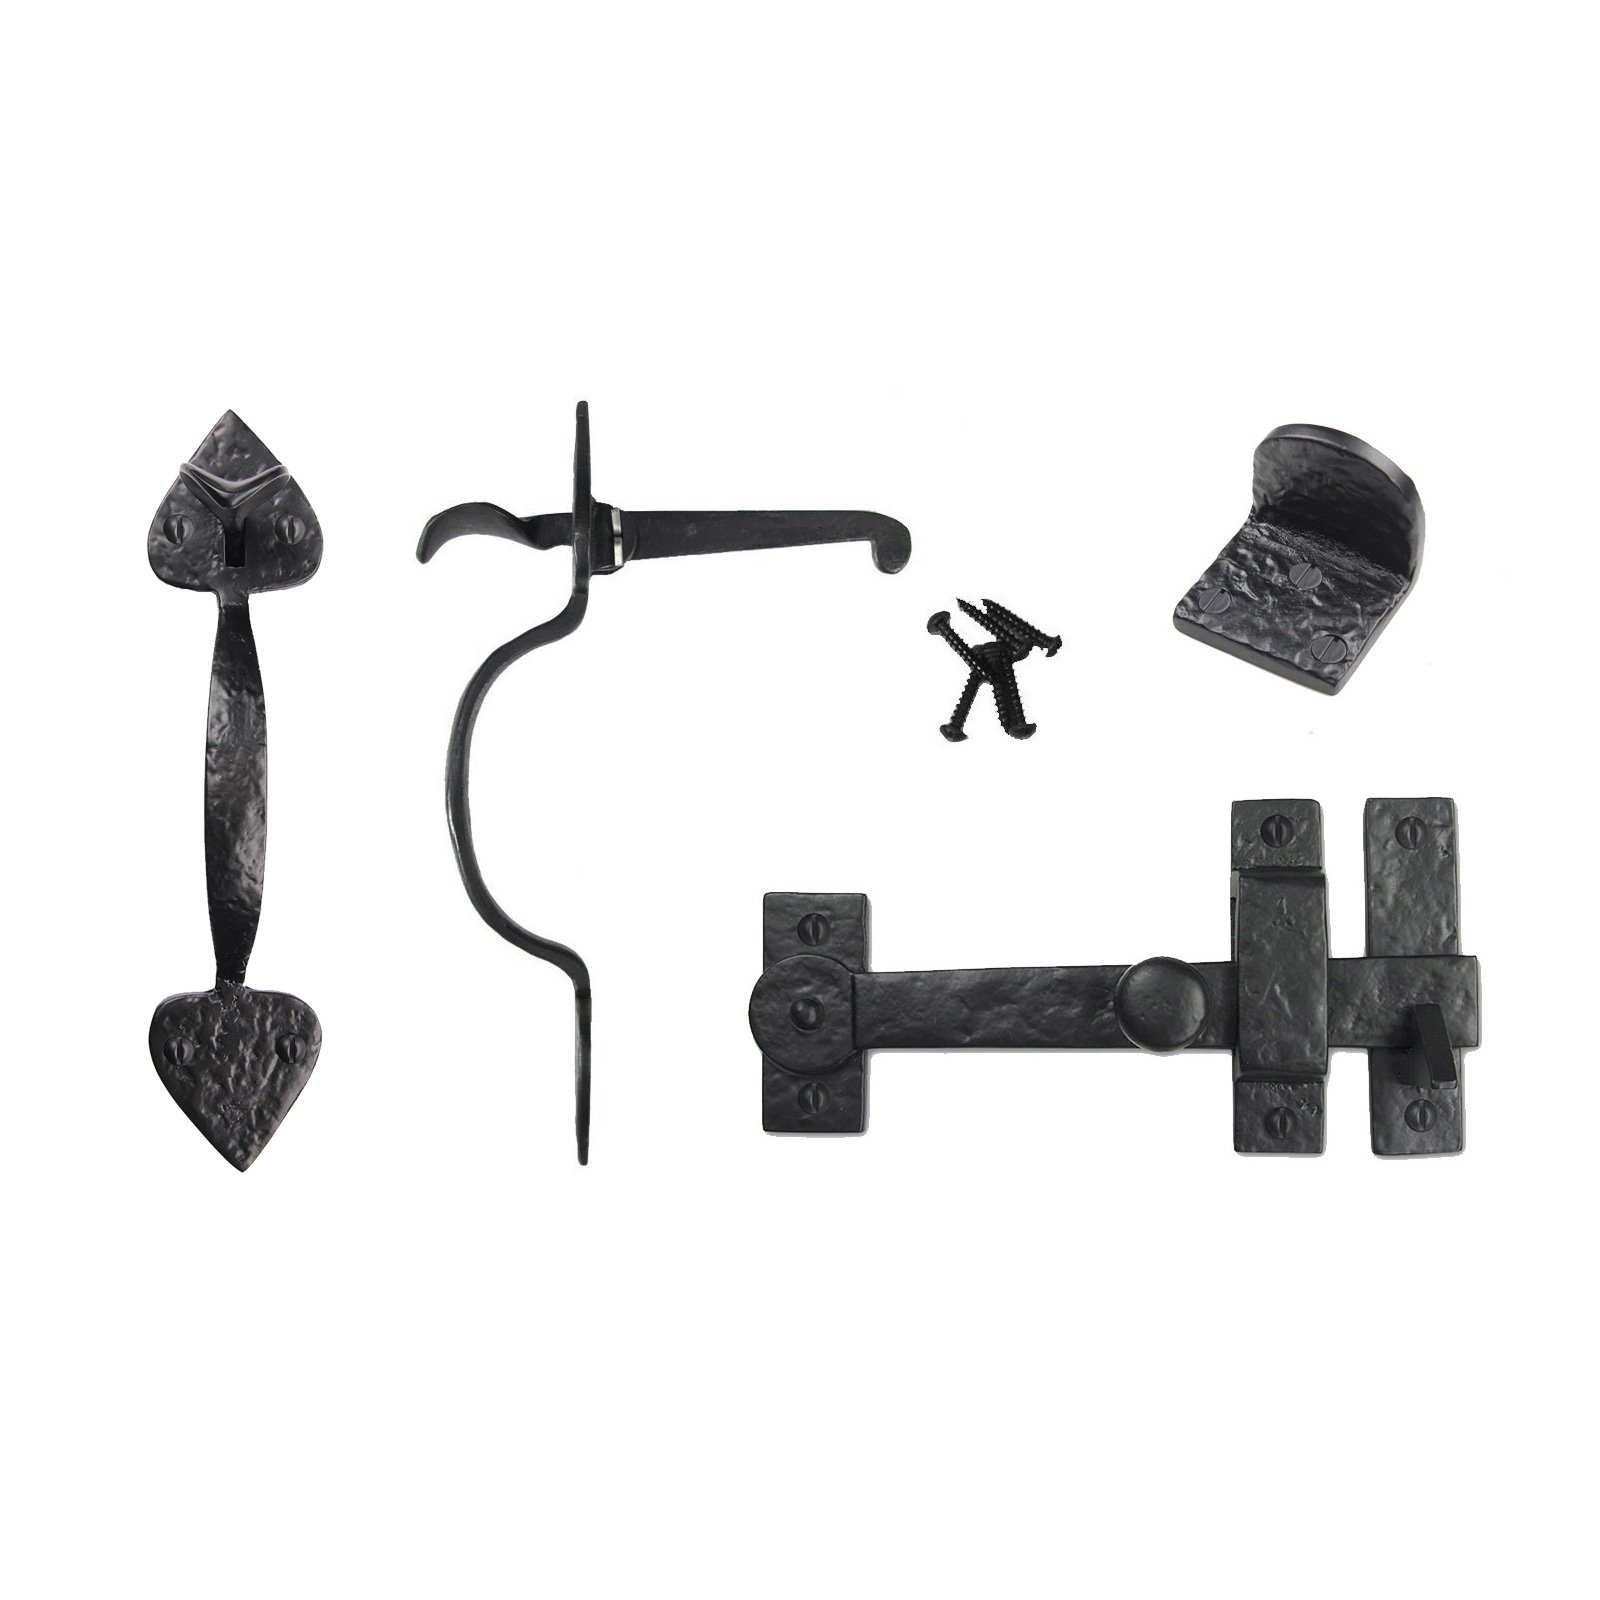 Iron Valley - Gate Kit - Drop Bar, Spear Thumb Latch, Gate Stop - Solid Cast Iron